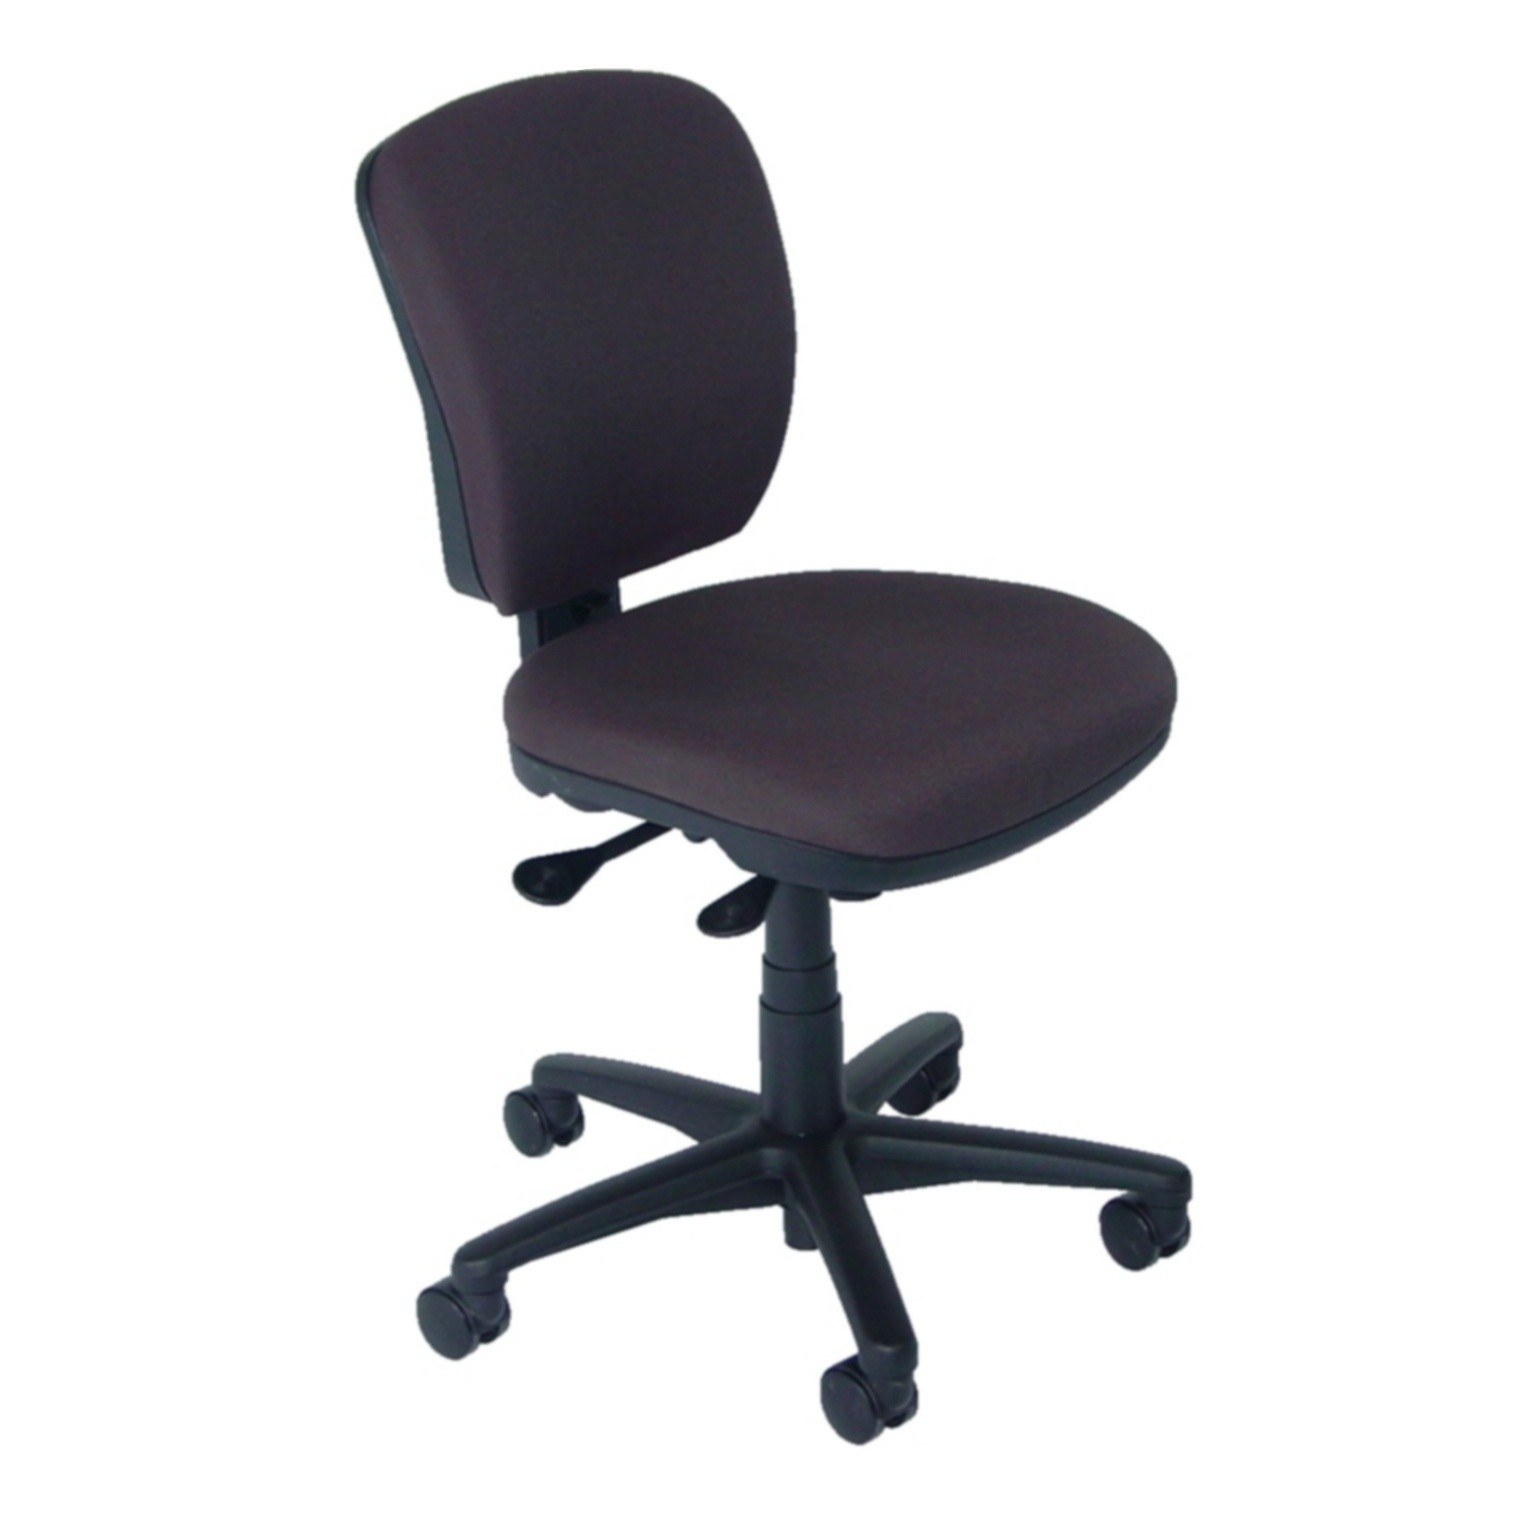 grey chair red check ergonomic list desk white dor sporting sporty ambience